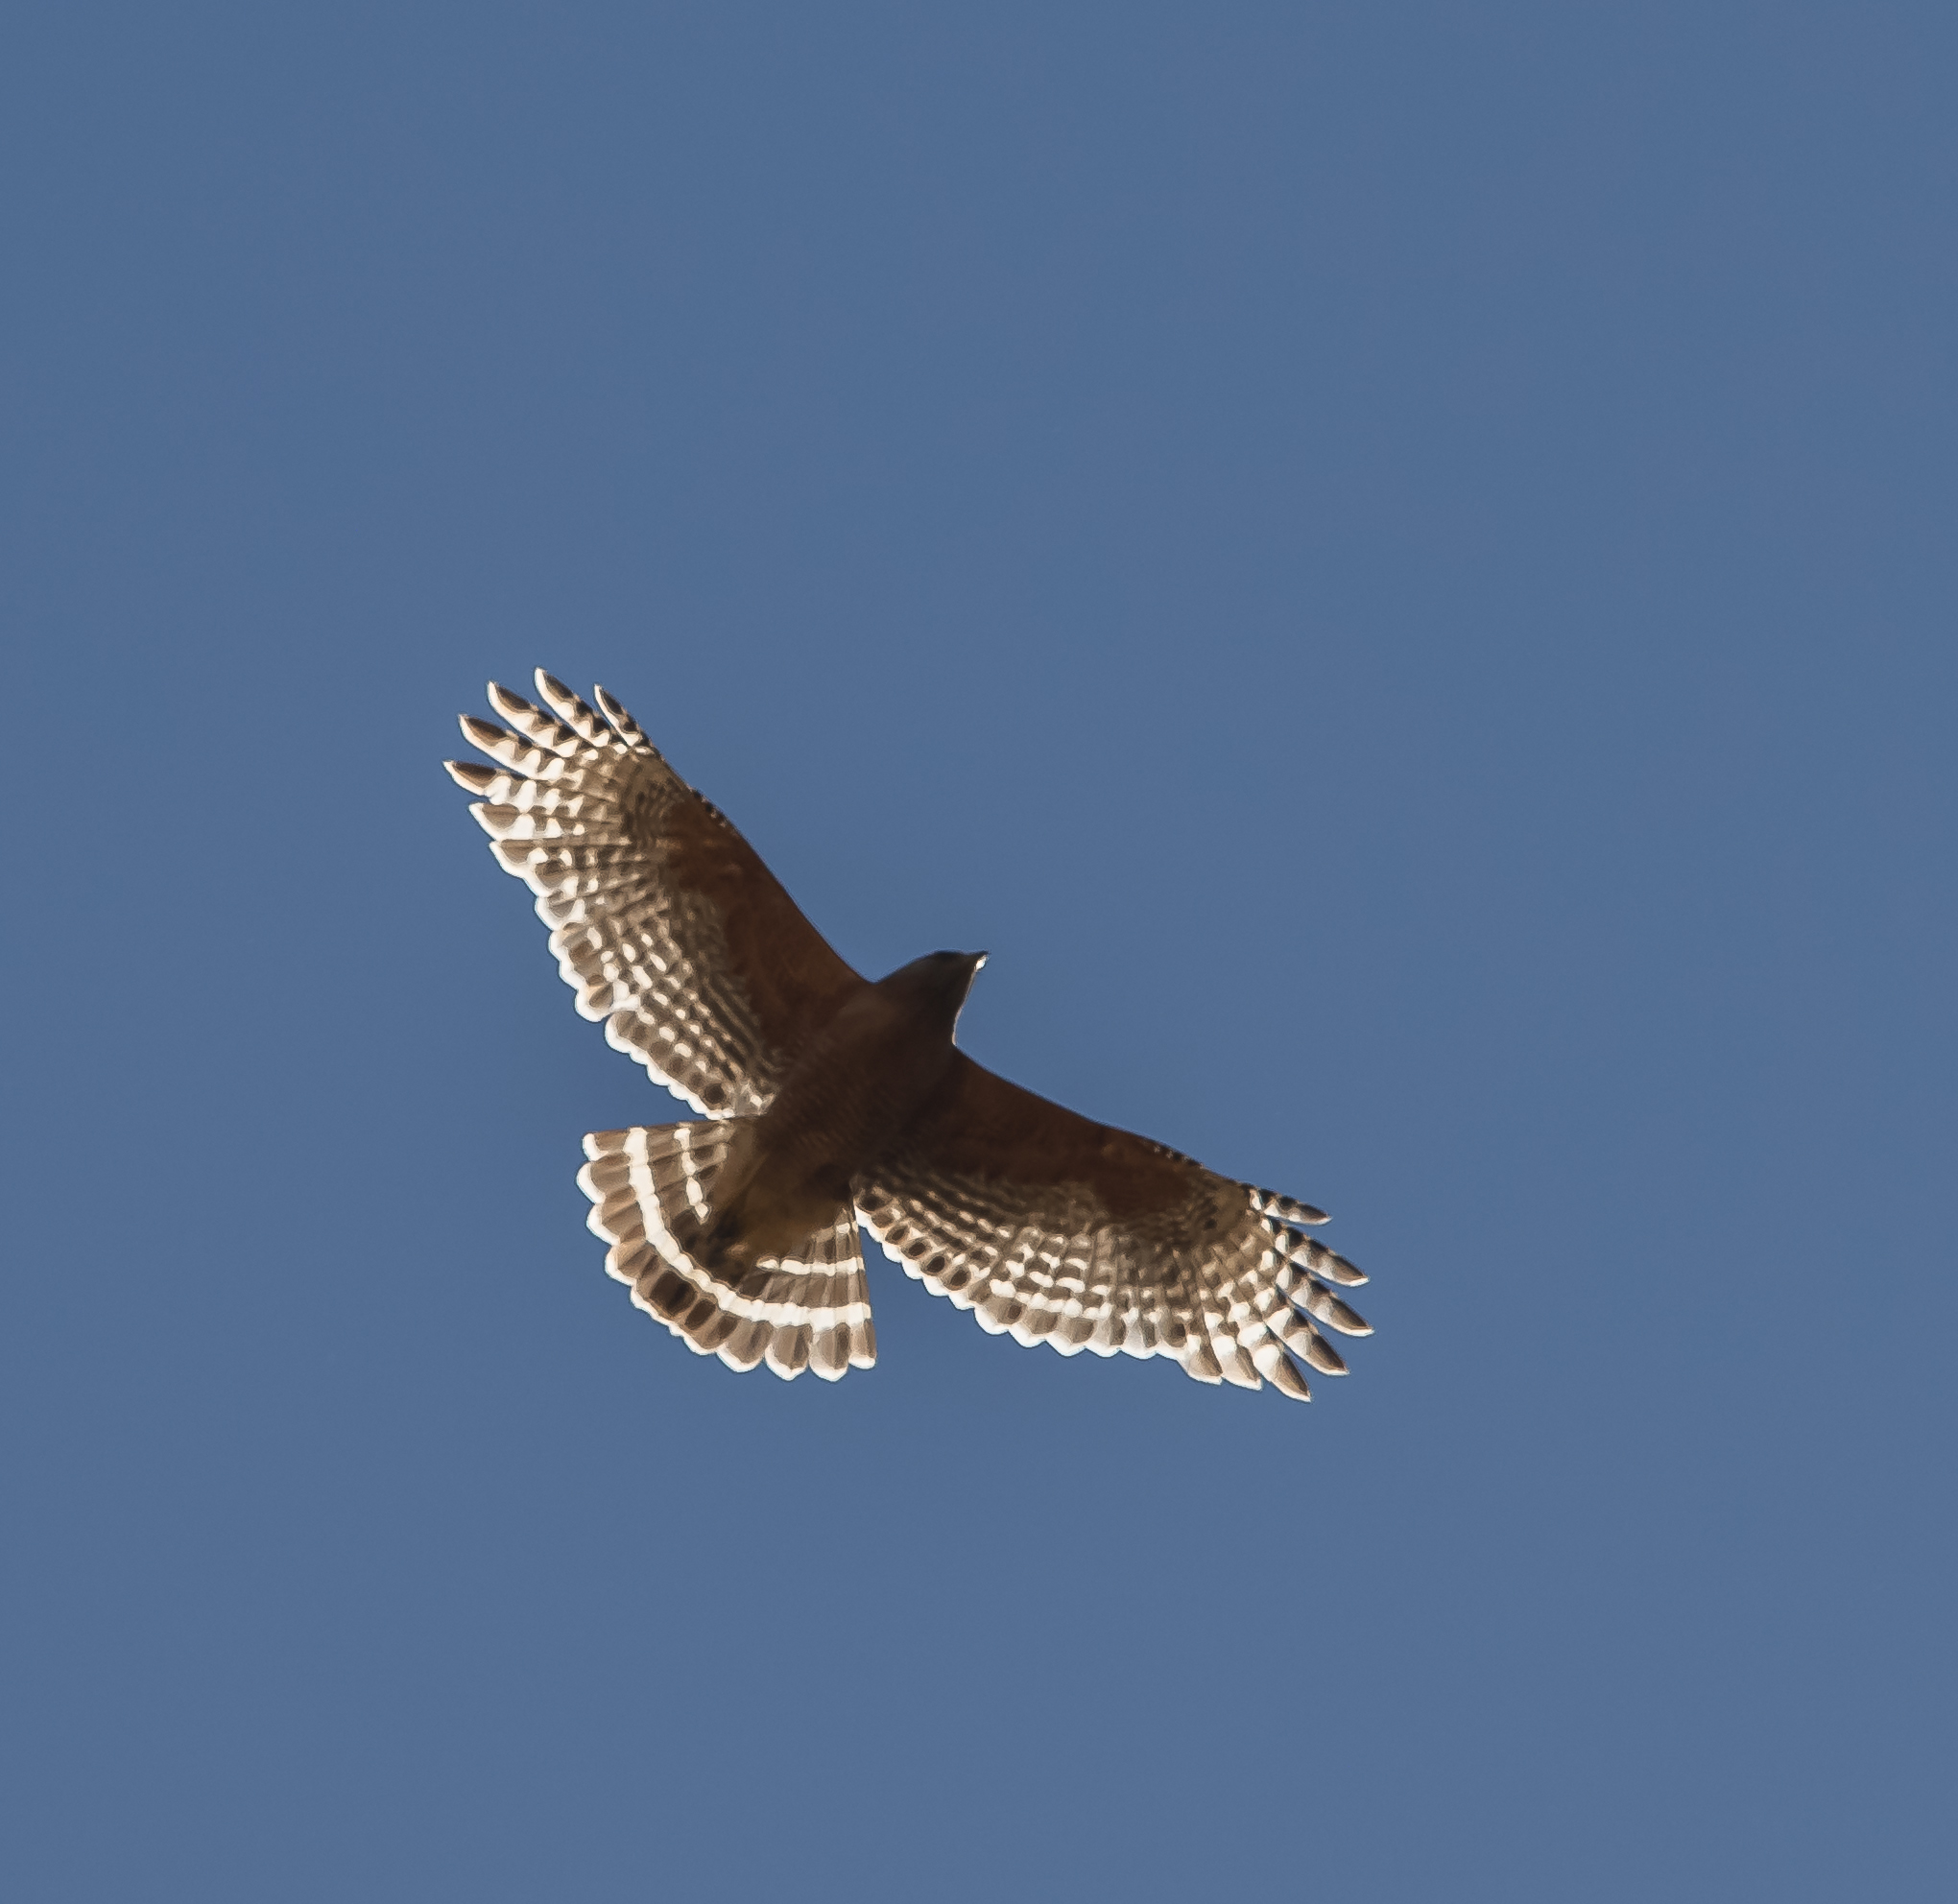 Red-shouldered Hawk at Coyote Valley Open Space Preserve, Morgan Hill, California